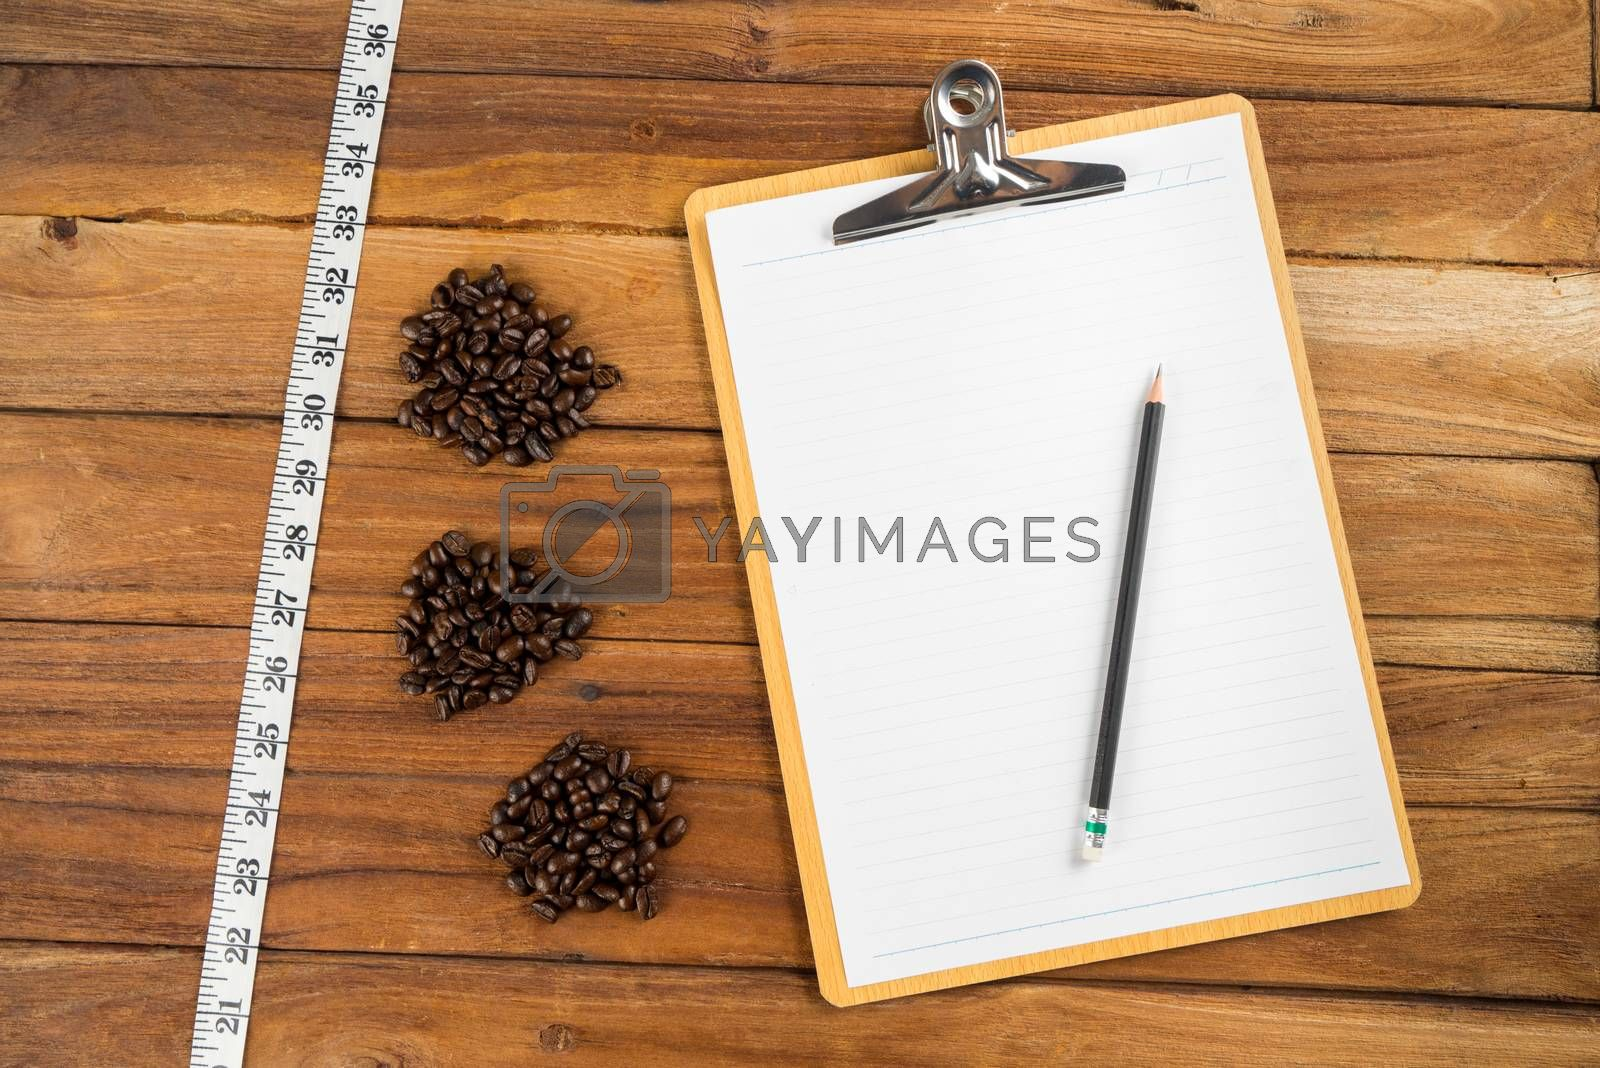 Royalty free image of Wooden Clipboard attach planning paper with pencil beside coffee by iamway